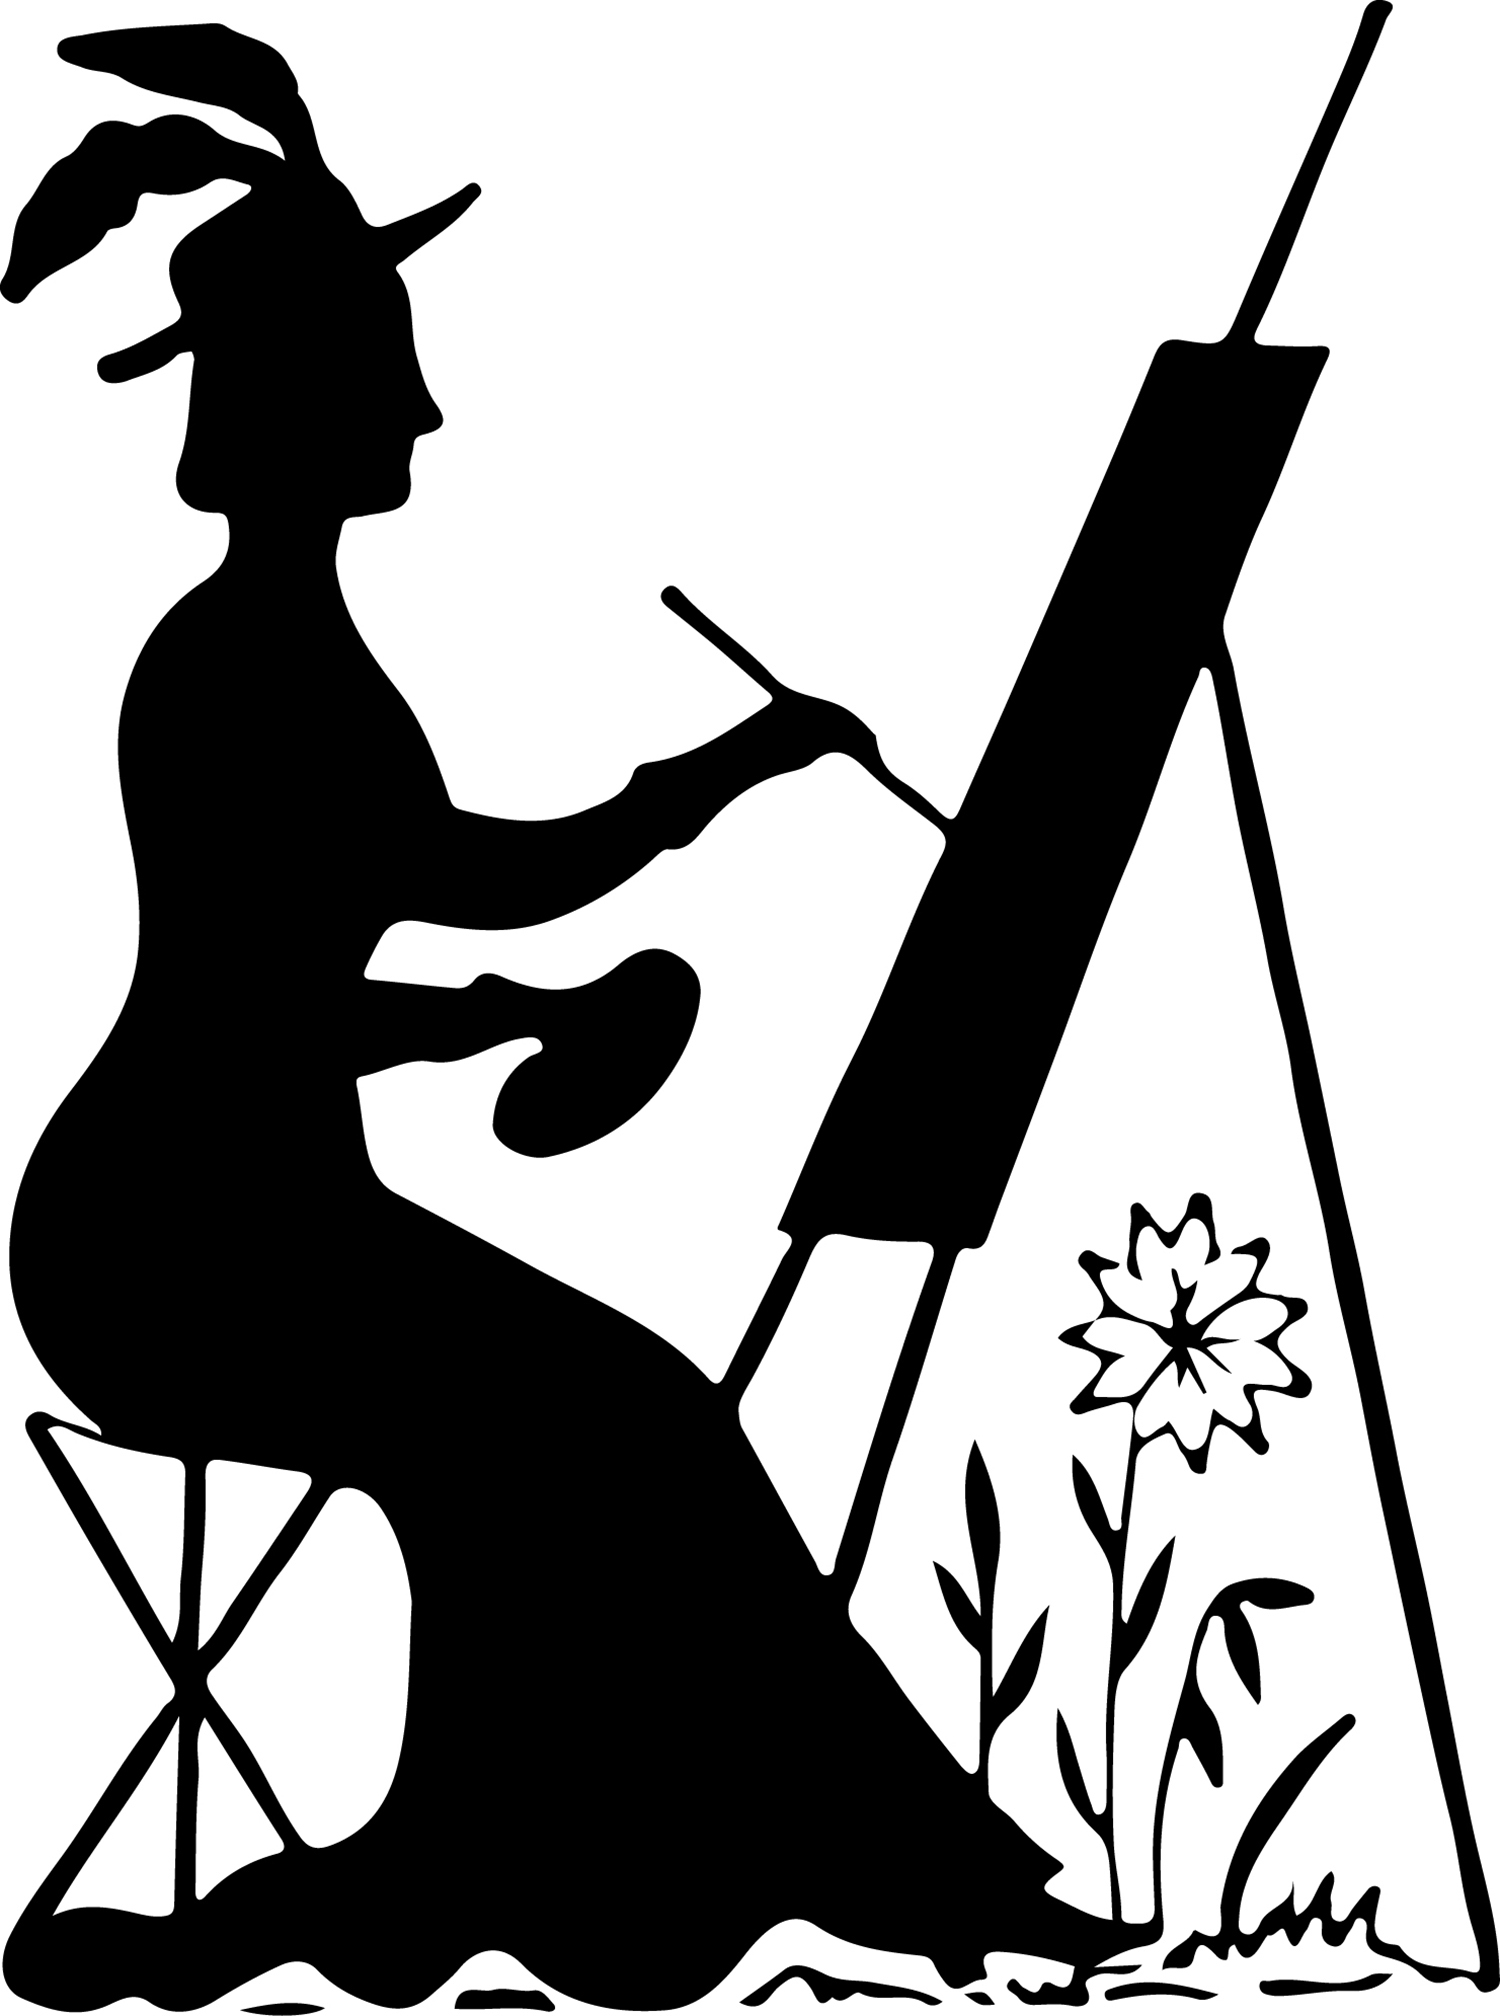 Silhouette Stock Image Lady Painting